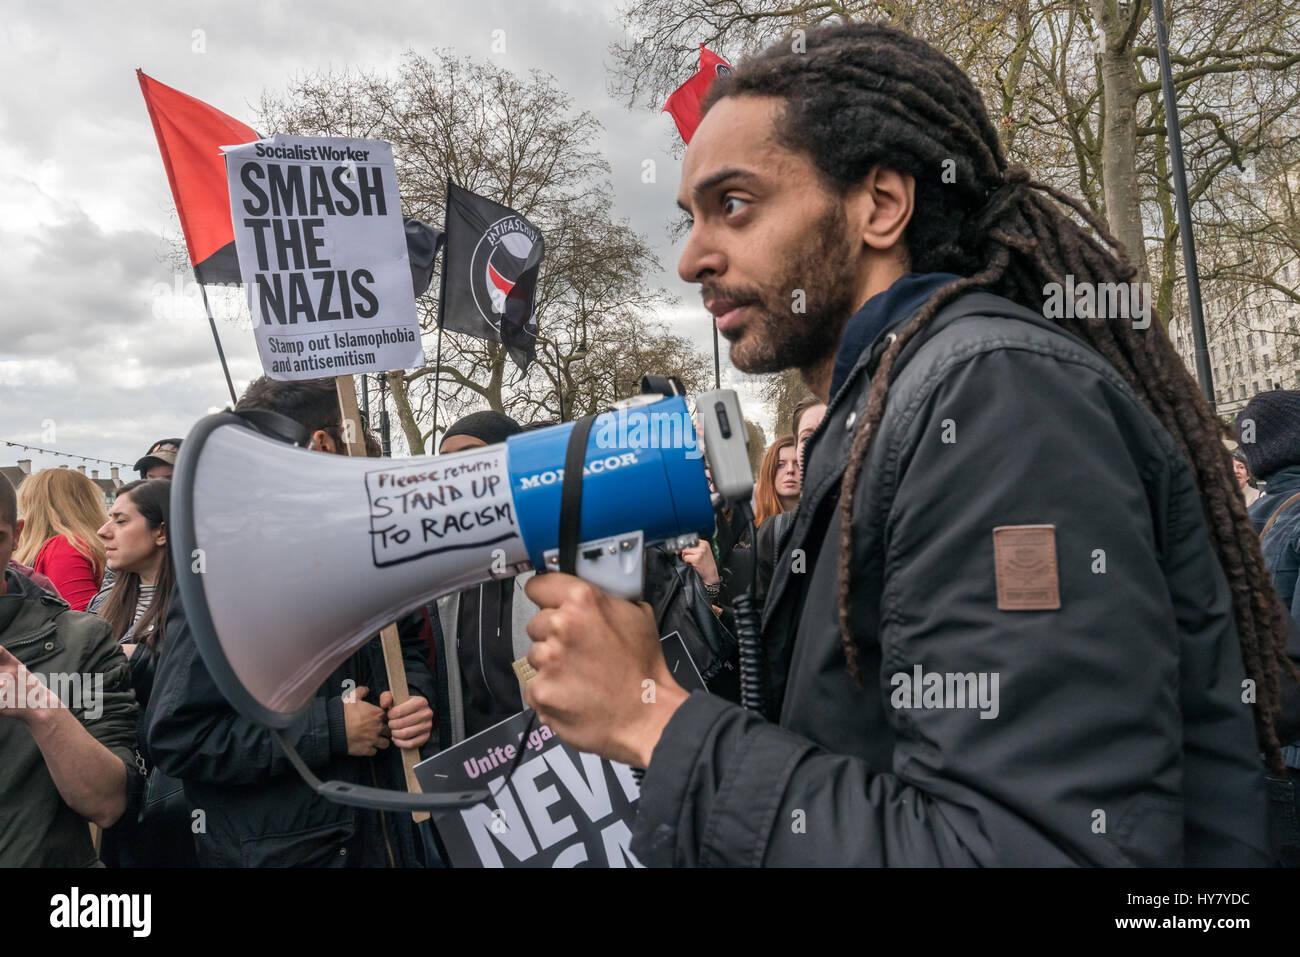 London, UK. 1st Apr, 2017. London, UK. 1st April 2017. Police kept the Anti-Fascist Network, London Antifascists - Stock Image